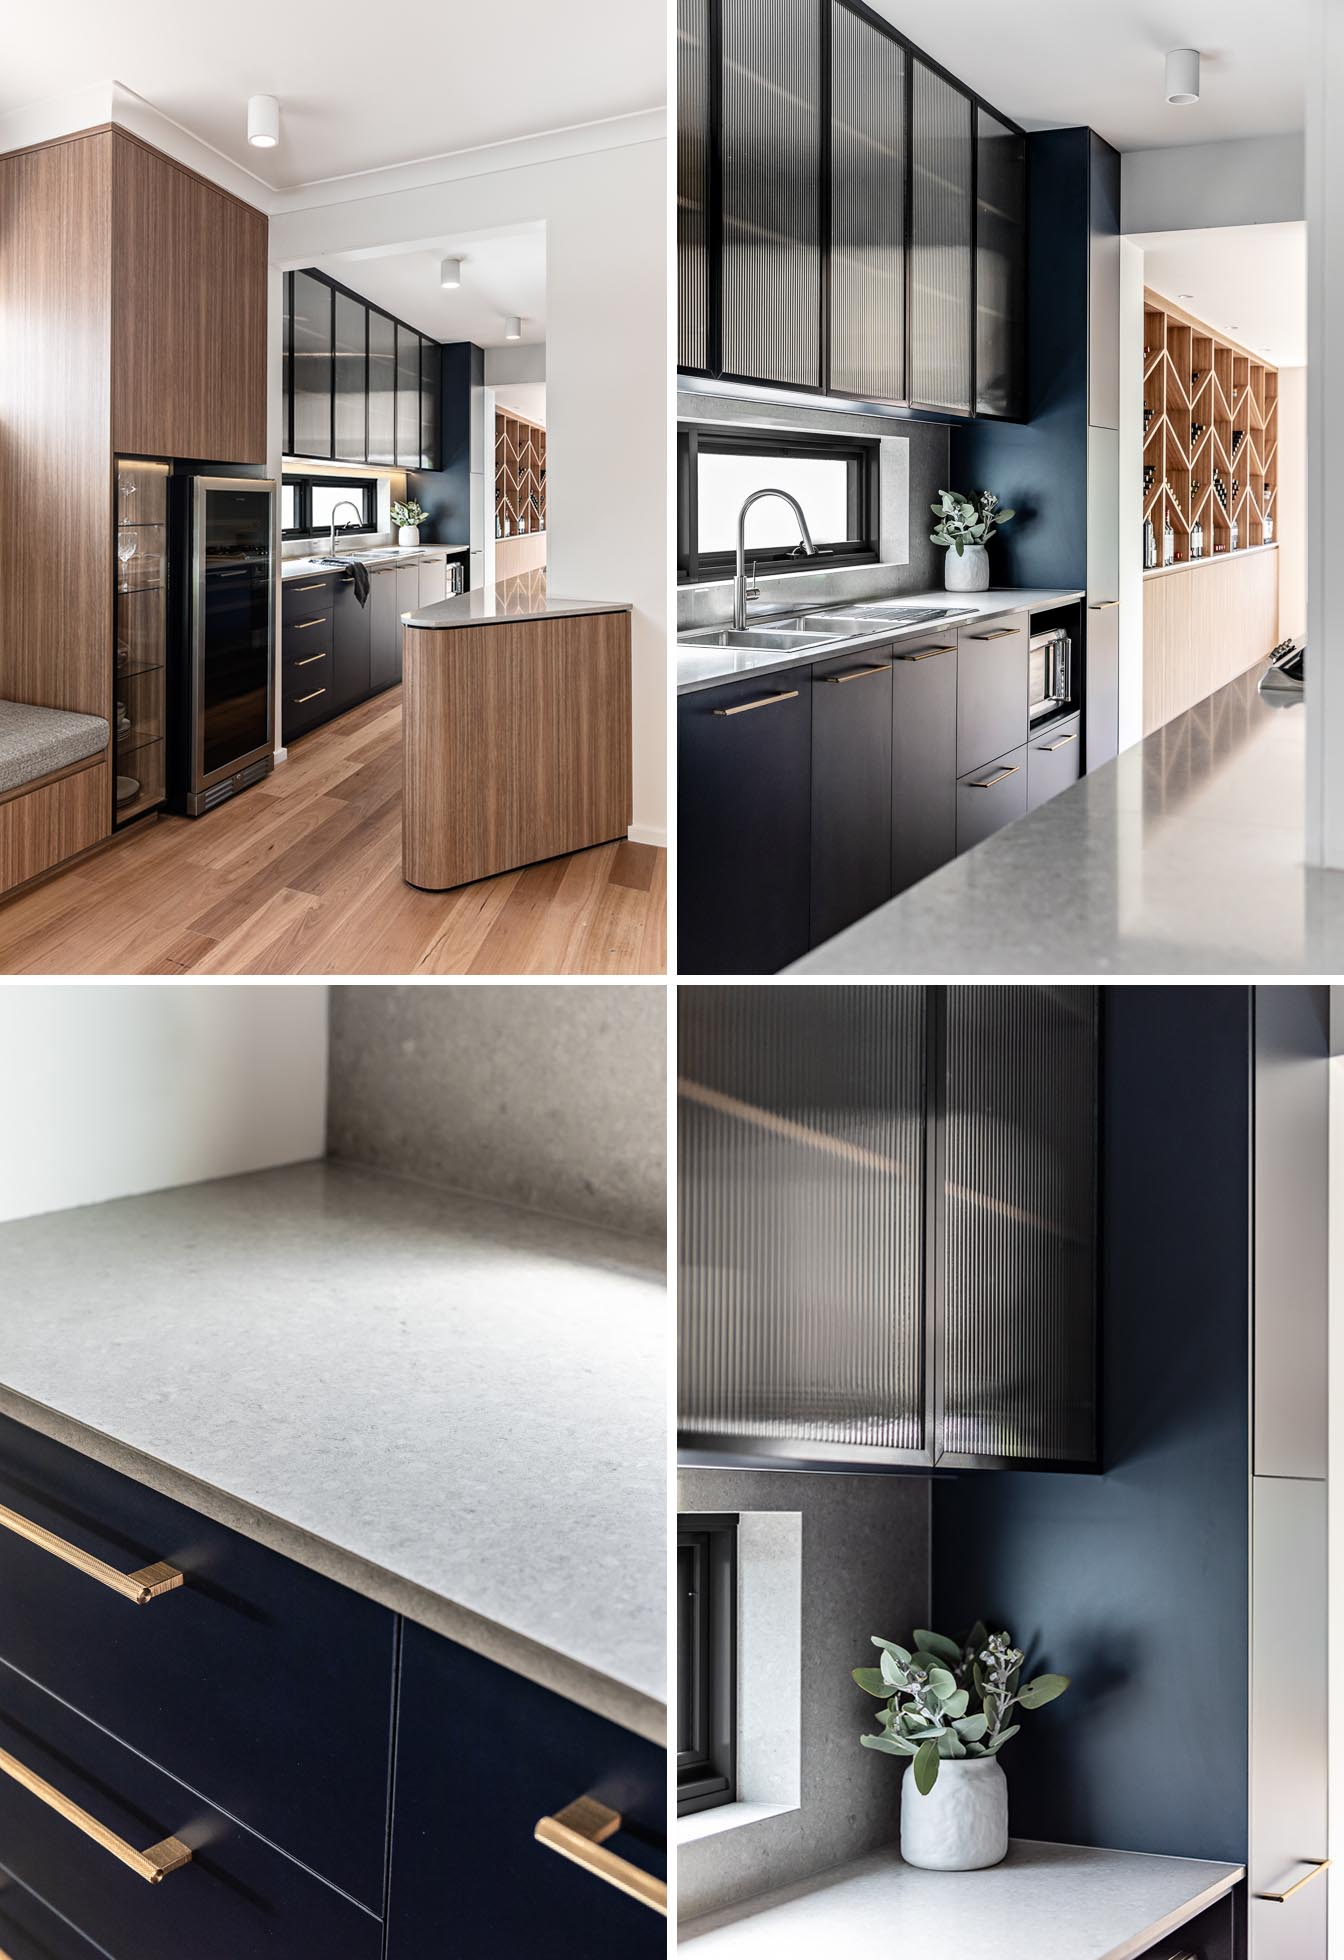 An existing galley kitchen was rebuilt with midnight blue joinery, fluted glass cabinets, soft grey counter tops, long brass handles, and a wine fridge.